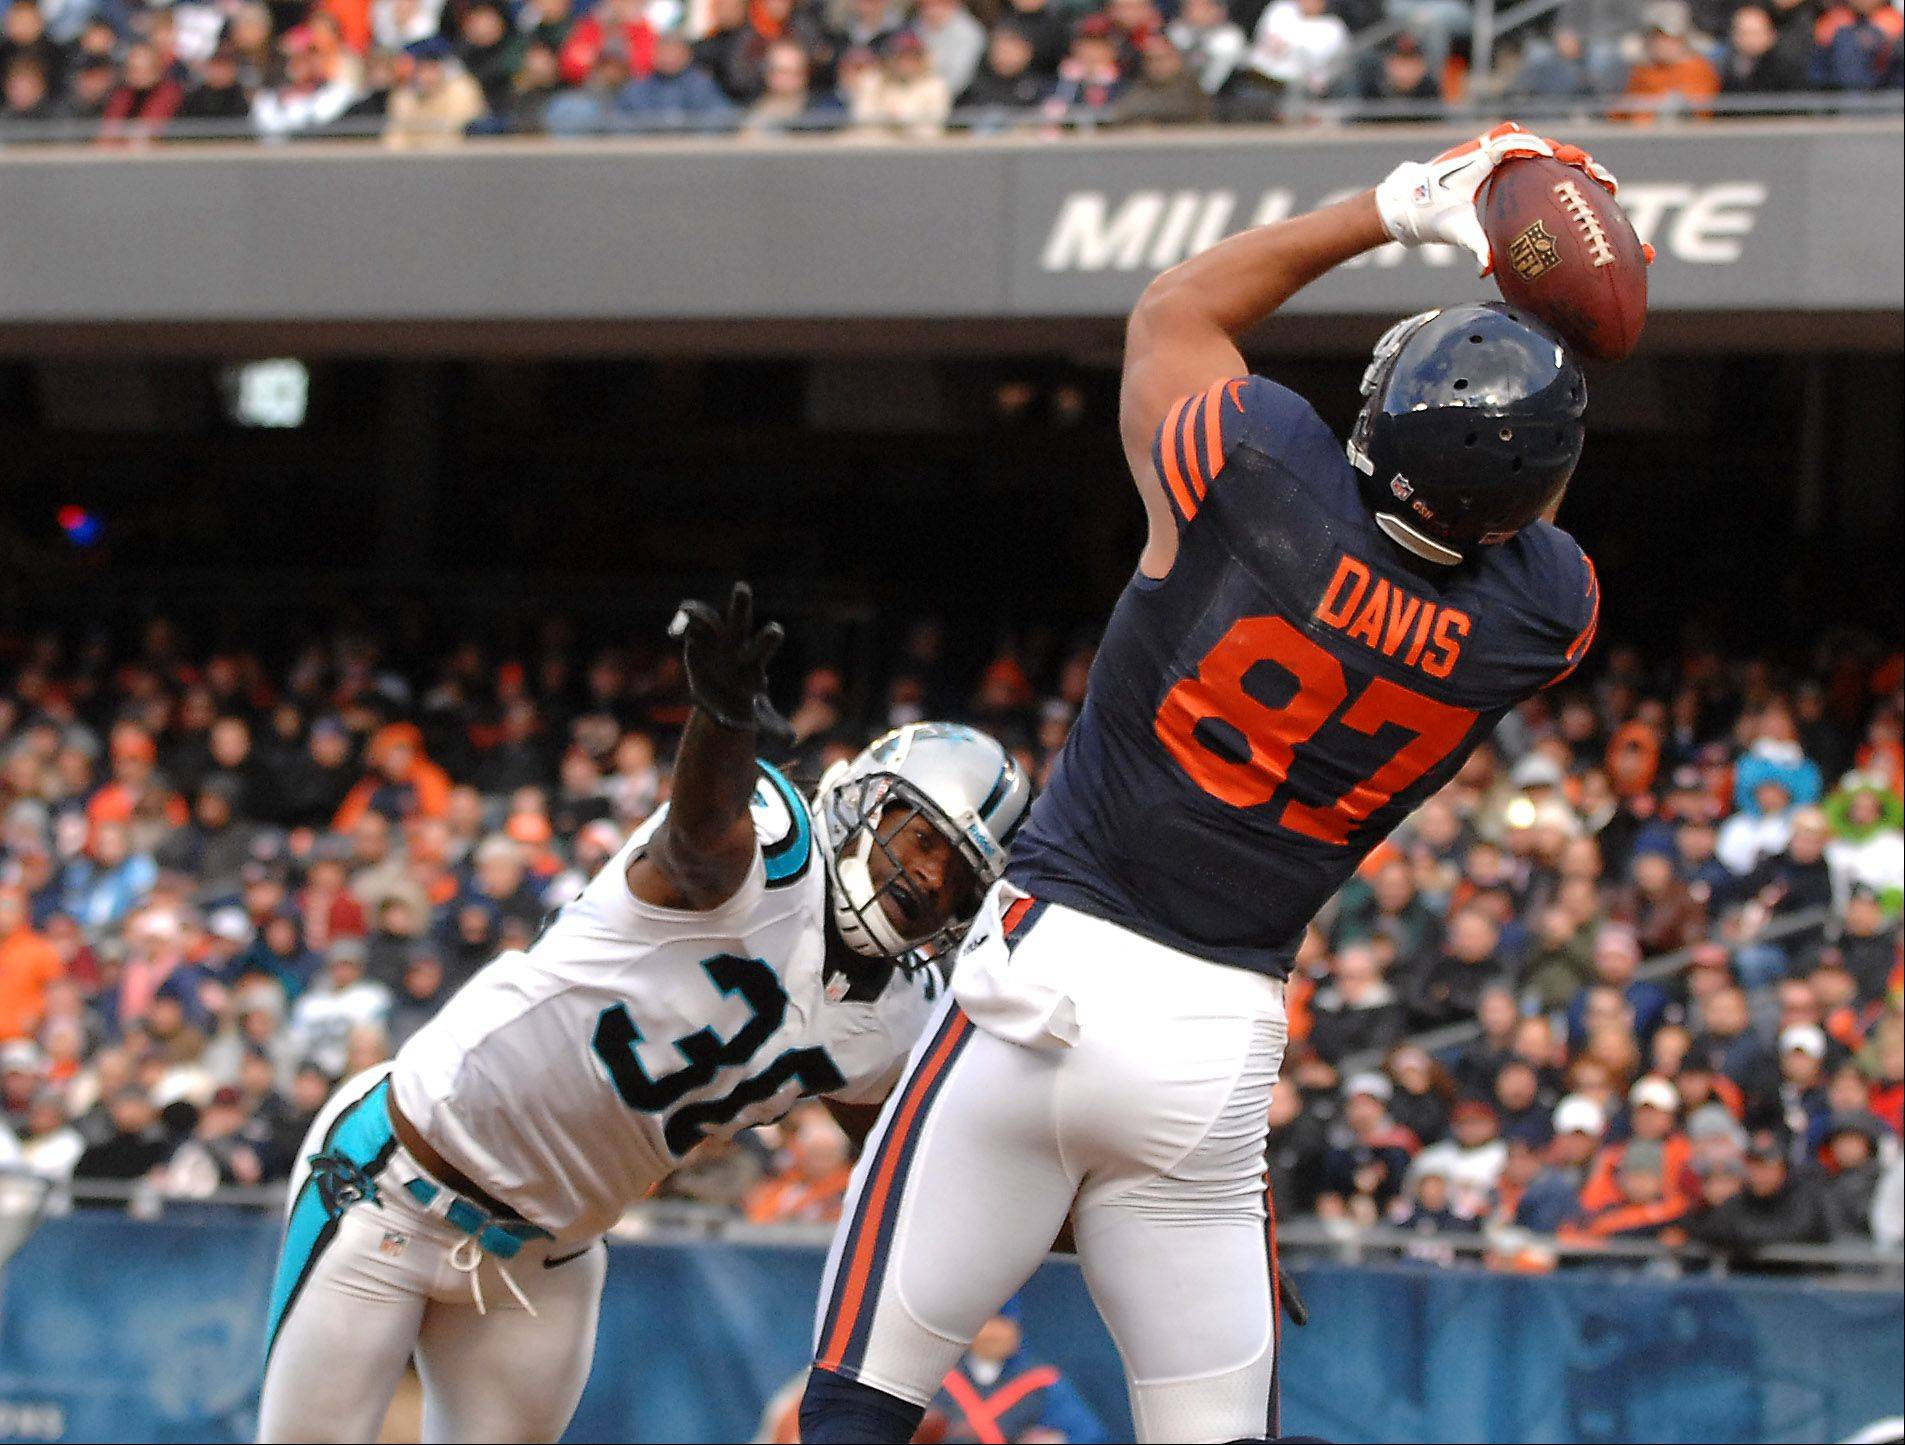 Chicago Bears tight end Kellen Davis (87) makes a fourth-quarter touchdown pass during Sunday's game at Soldier Field in Chicago.